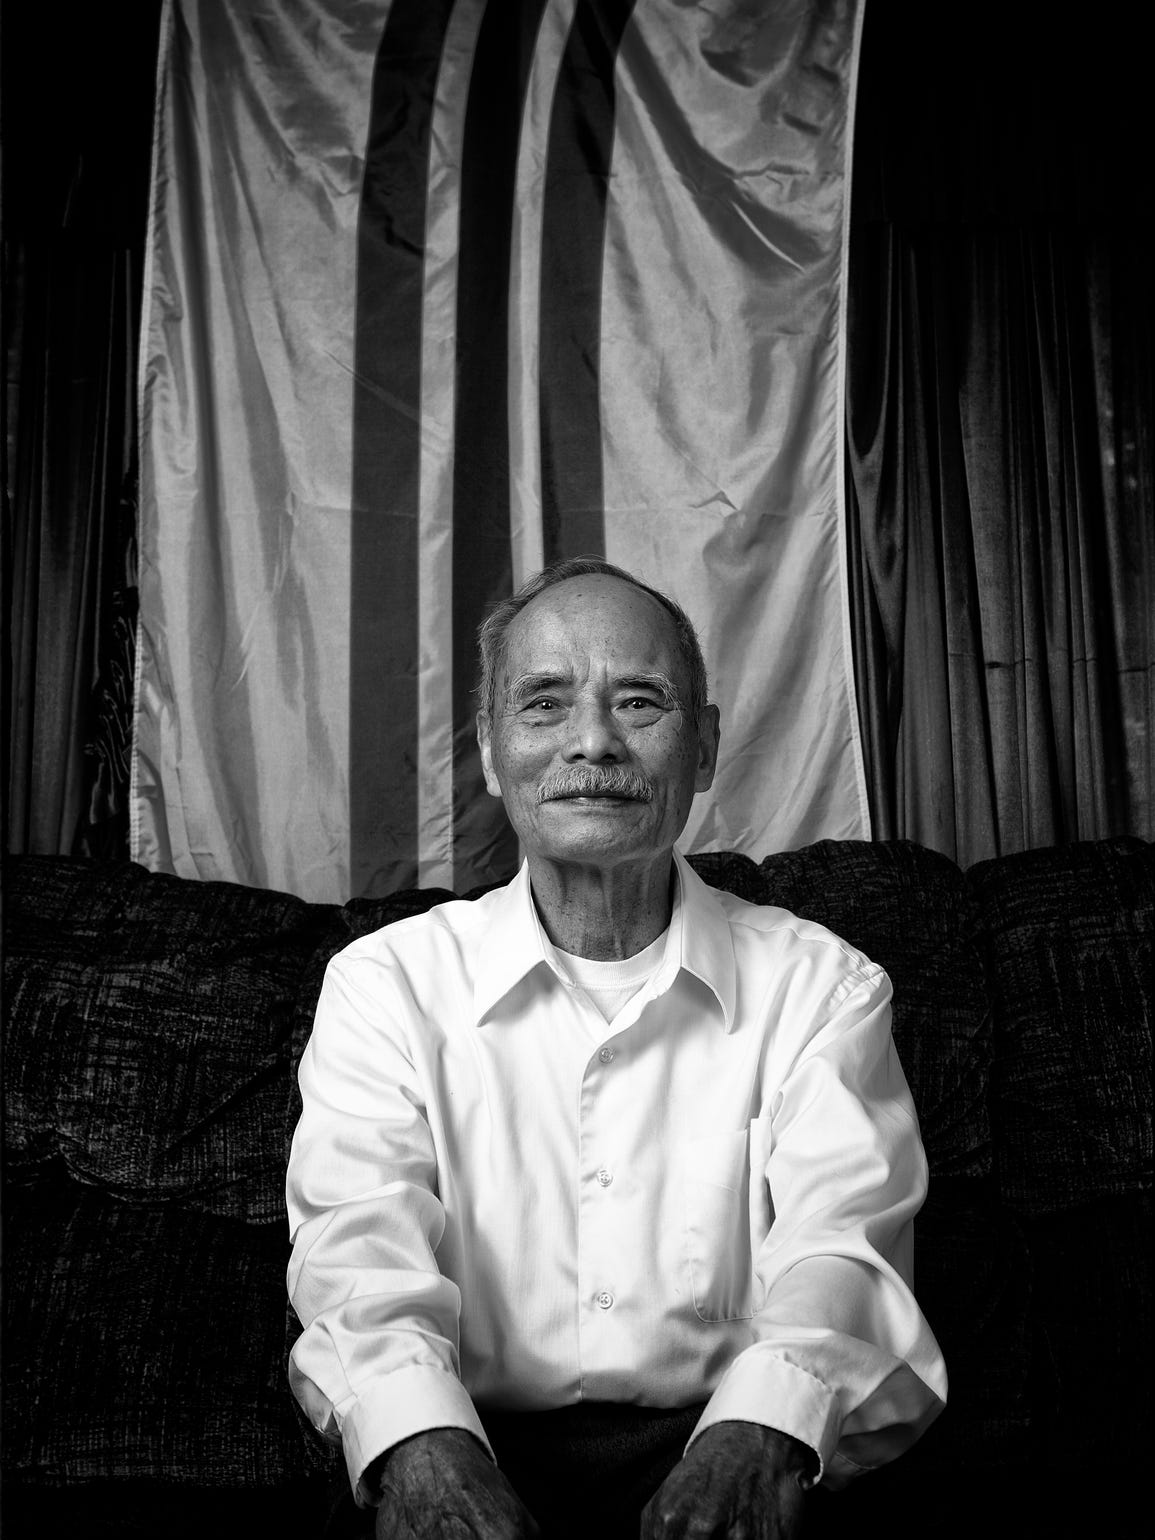 Former South Vietnamese army officer Thuc Nguyen spent